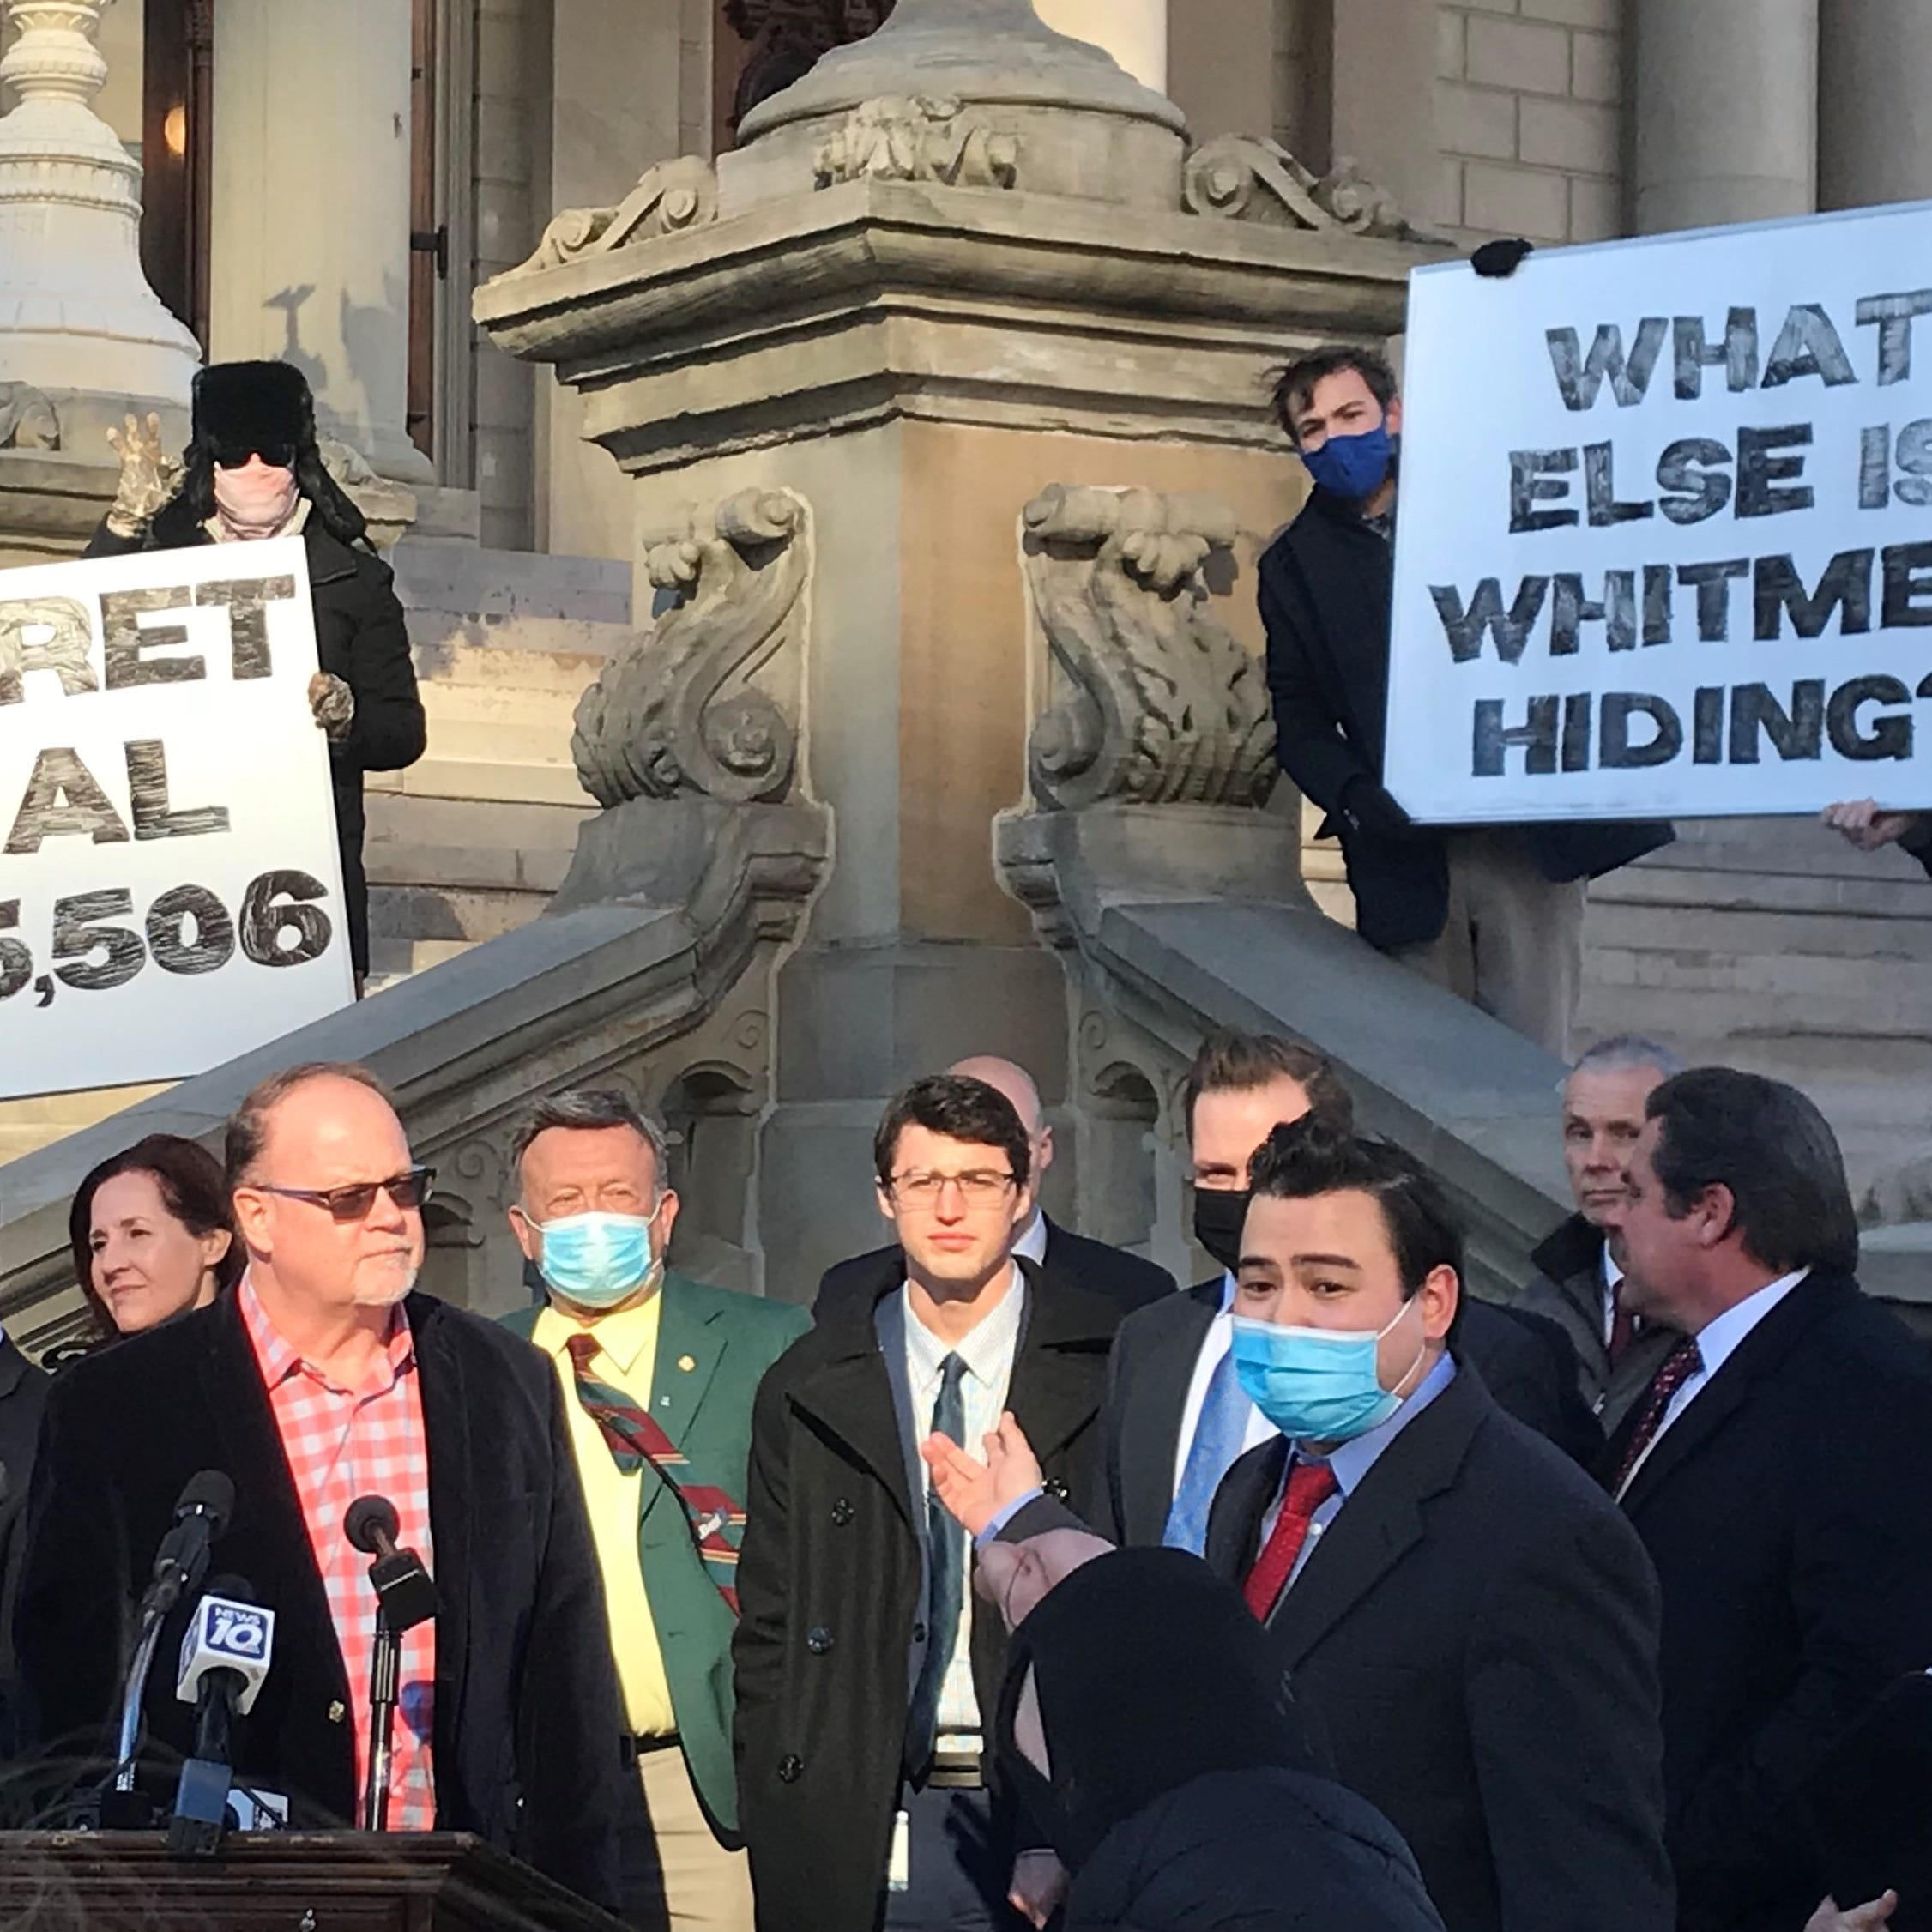 Republican state lawmakers hold a press conference on Tuesday, March 2, 2021, to criticize Gov. Gretchen Whitmer